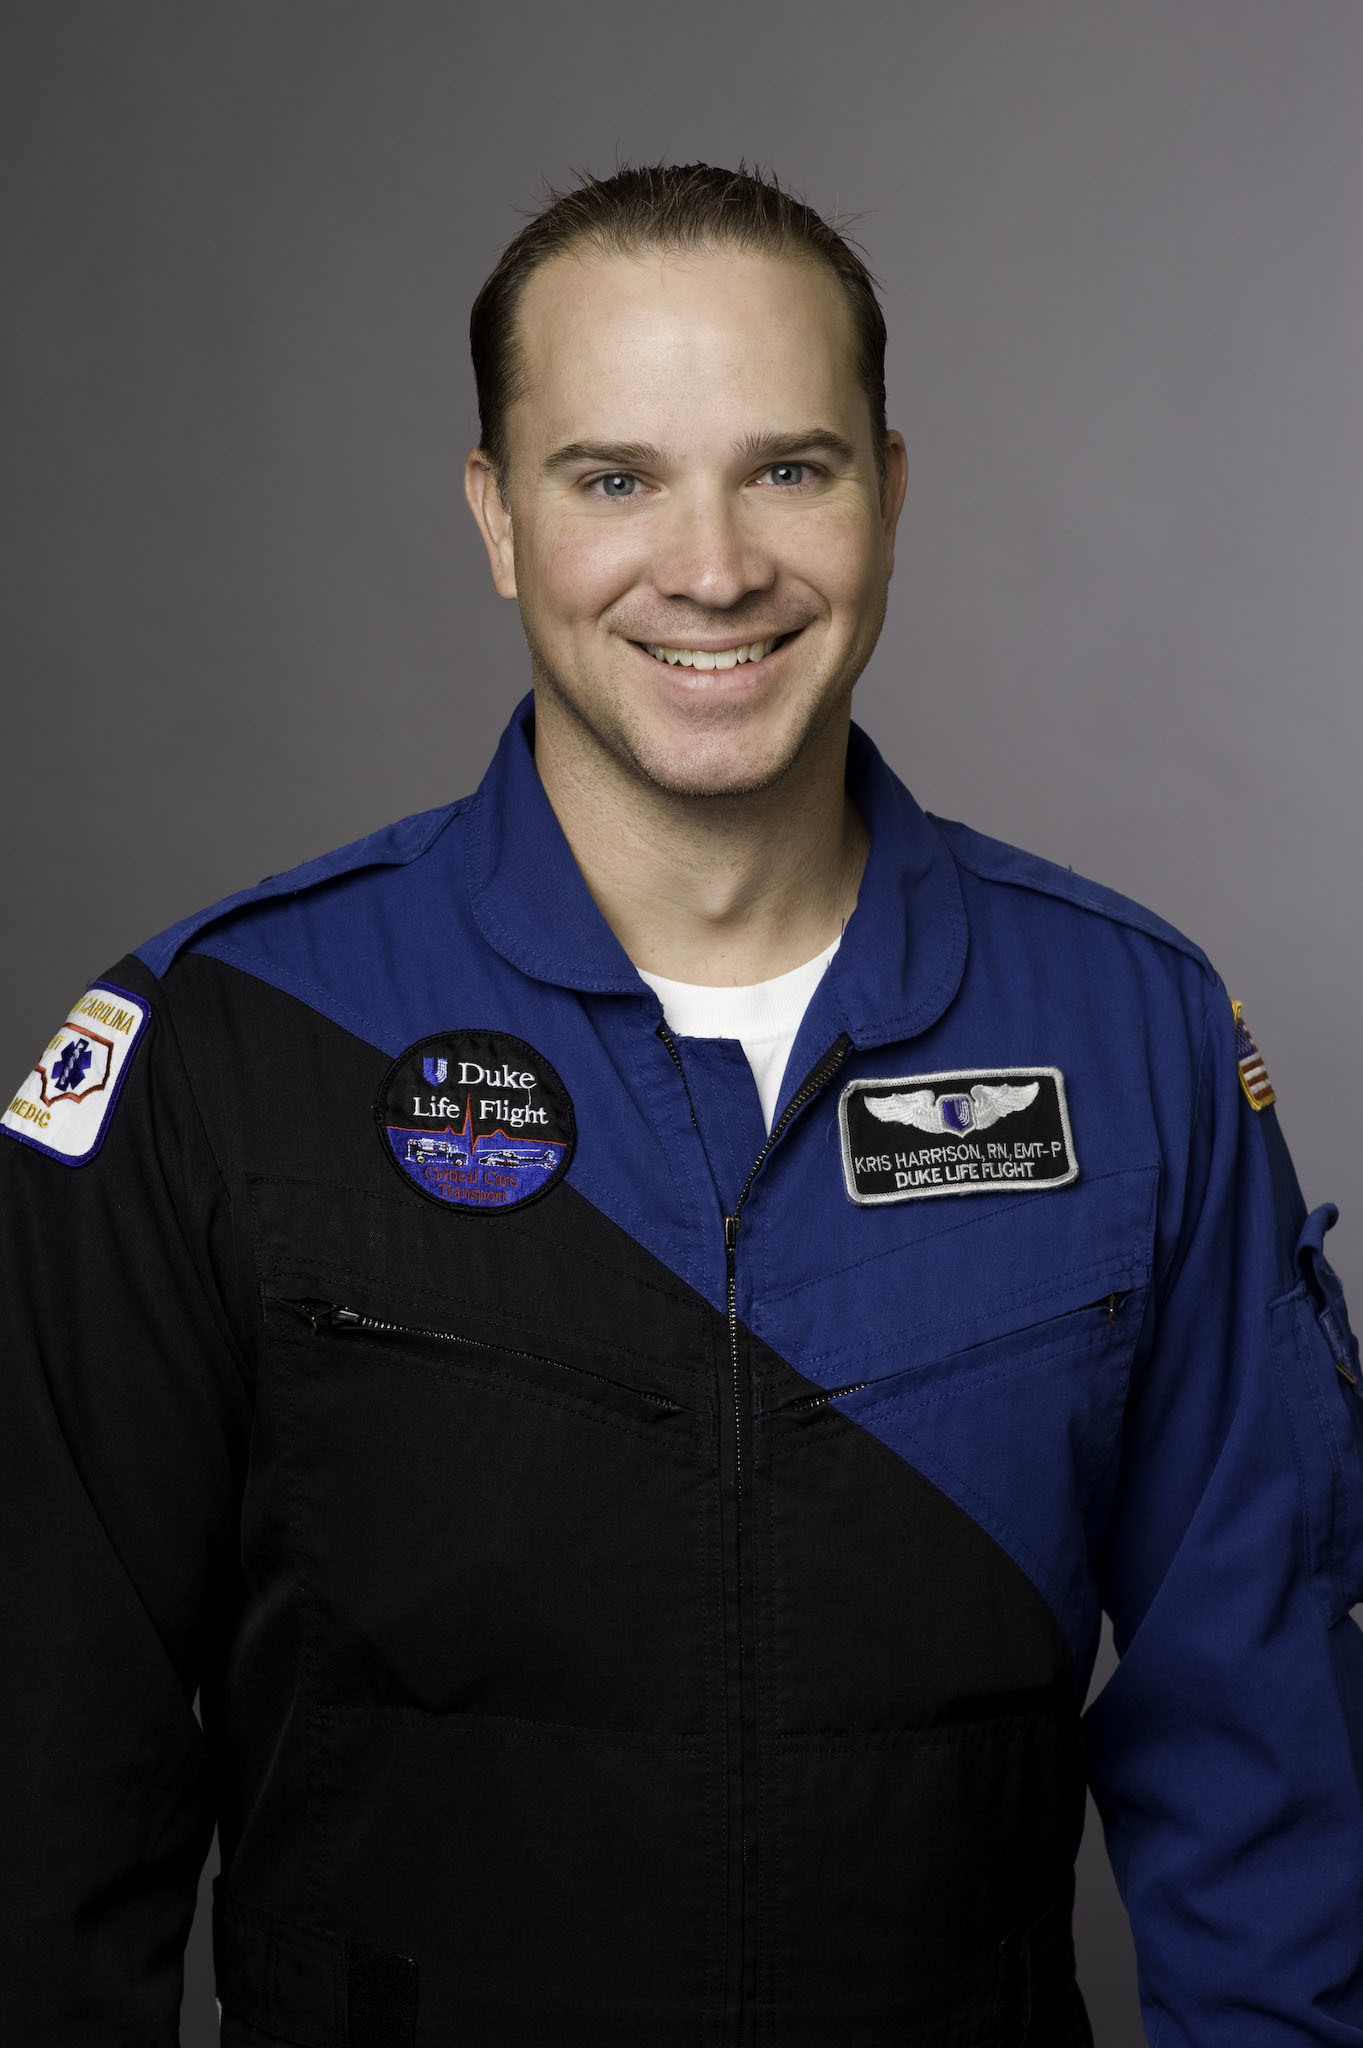 <div class='meta'><div class='origin-logo' data-origin='none'></div><span class='caption-text' data-credit='image courtesy Duke University'>Flight nurse Kris Harrison</span></div>